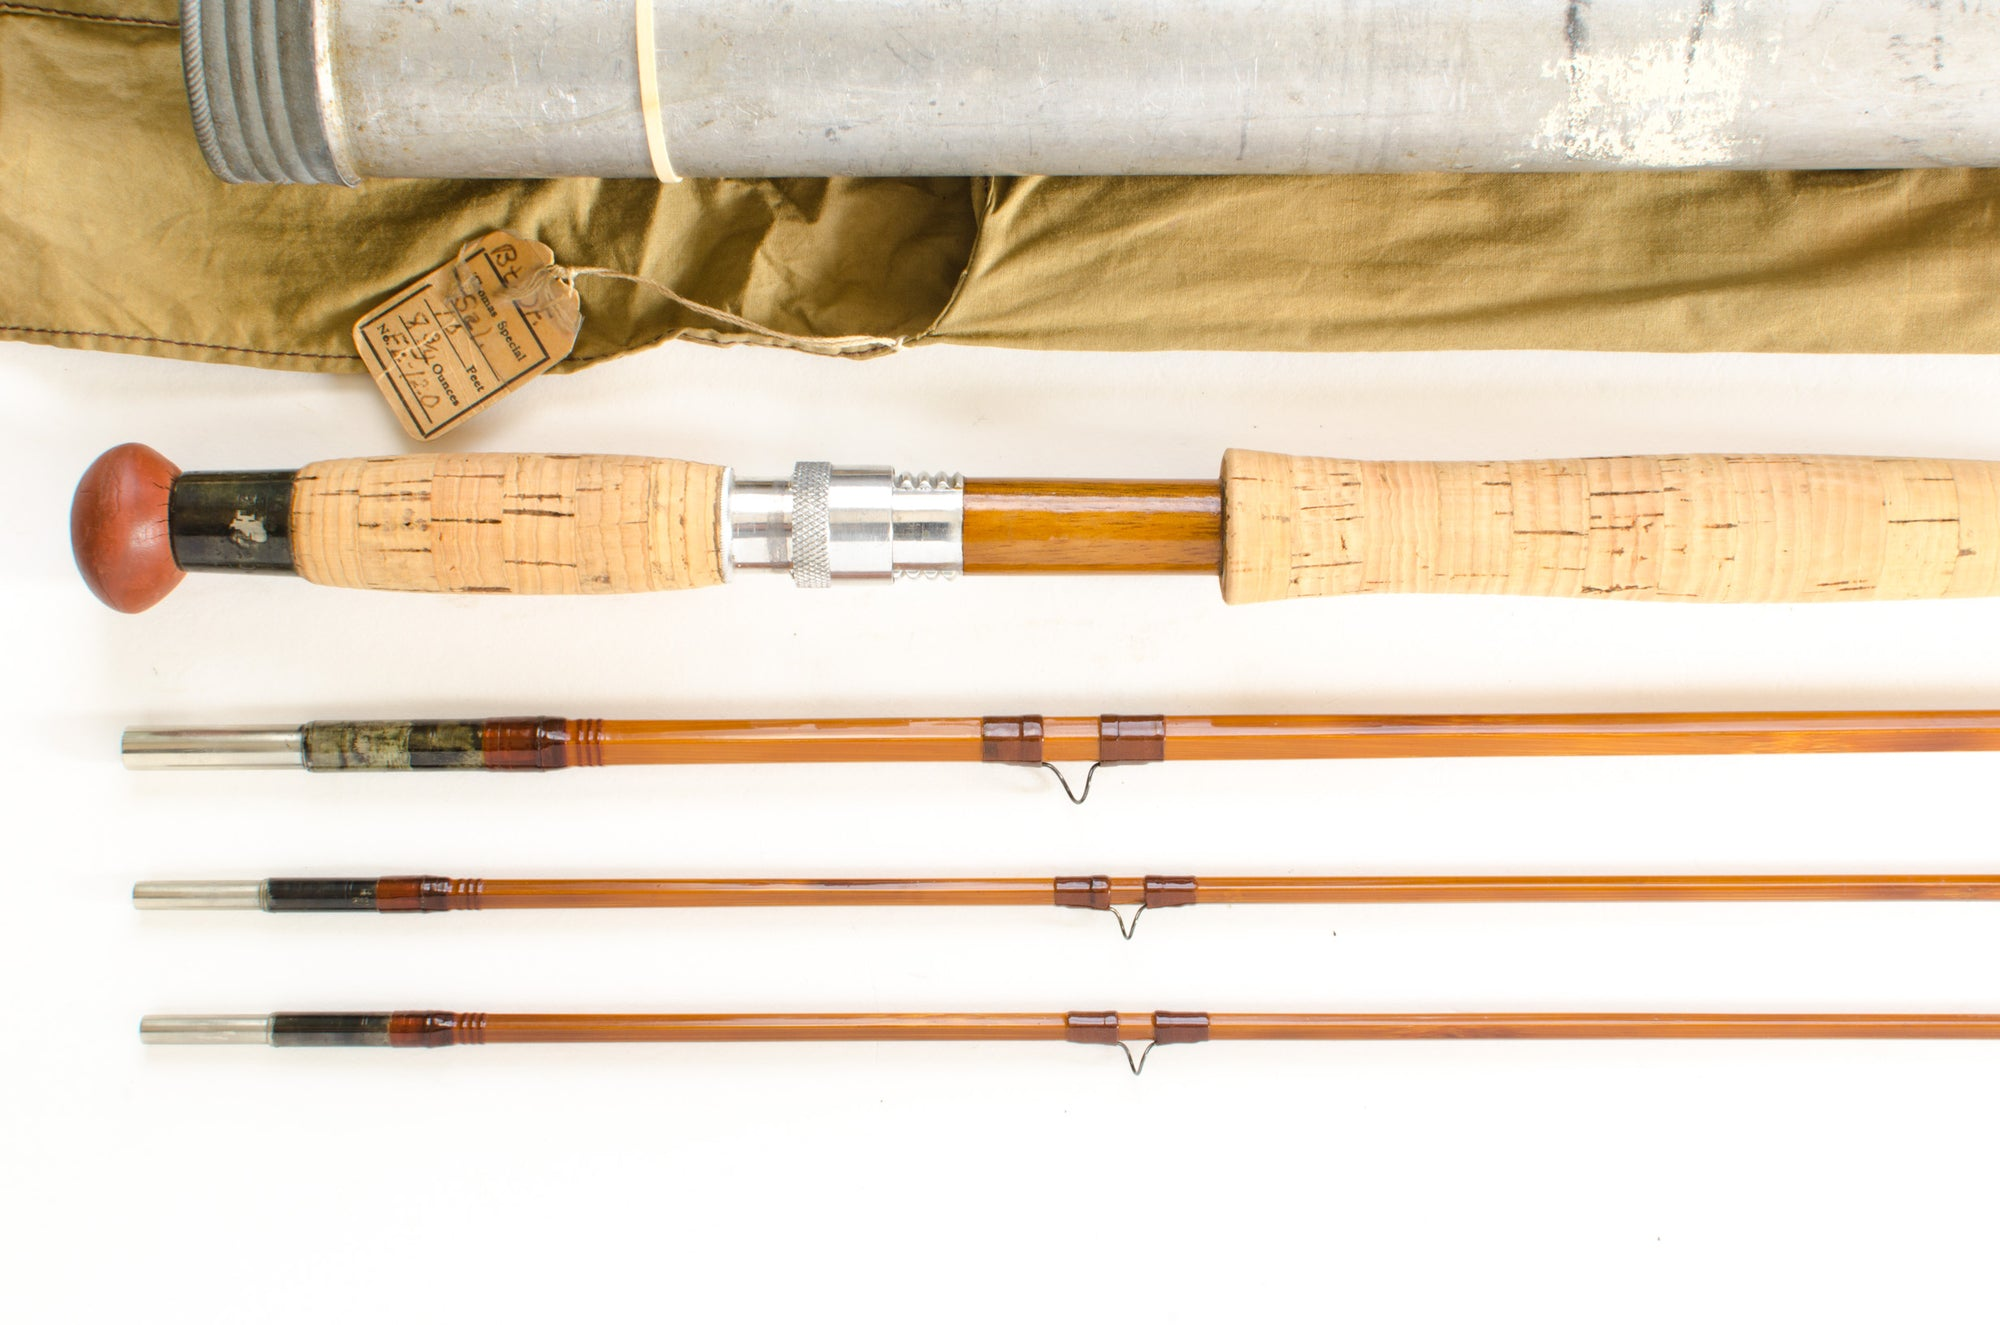 FE Thomas Browntone Dry Fly Salmon Rod 10' 3/2 #8